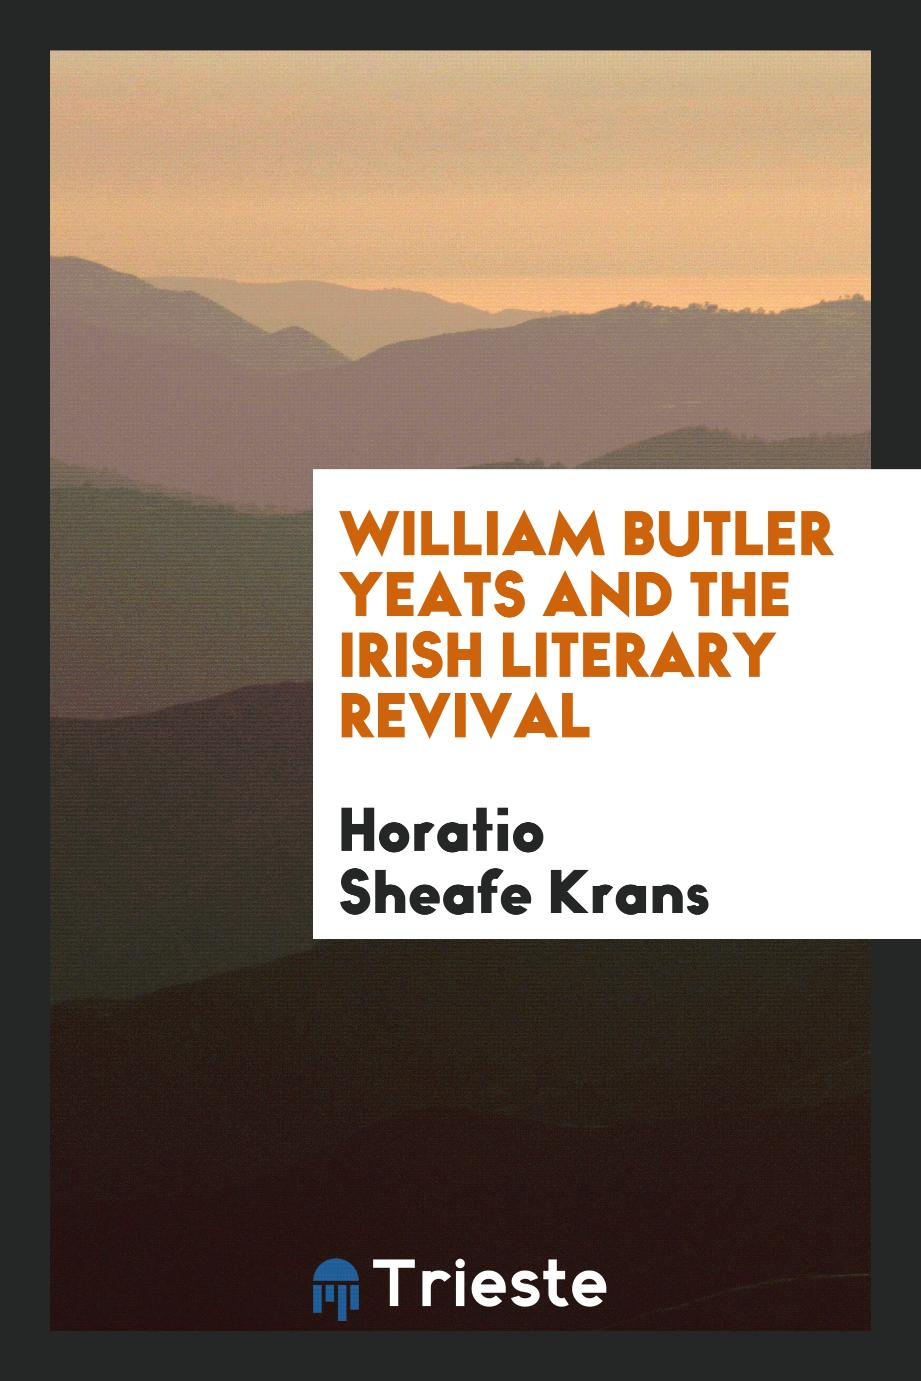 William Butler Yeats and the Irish Literary Revival